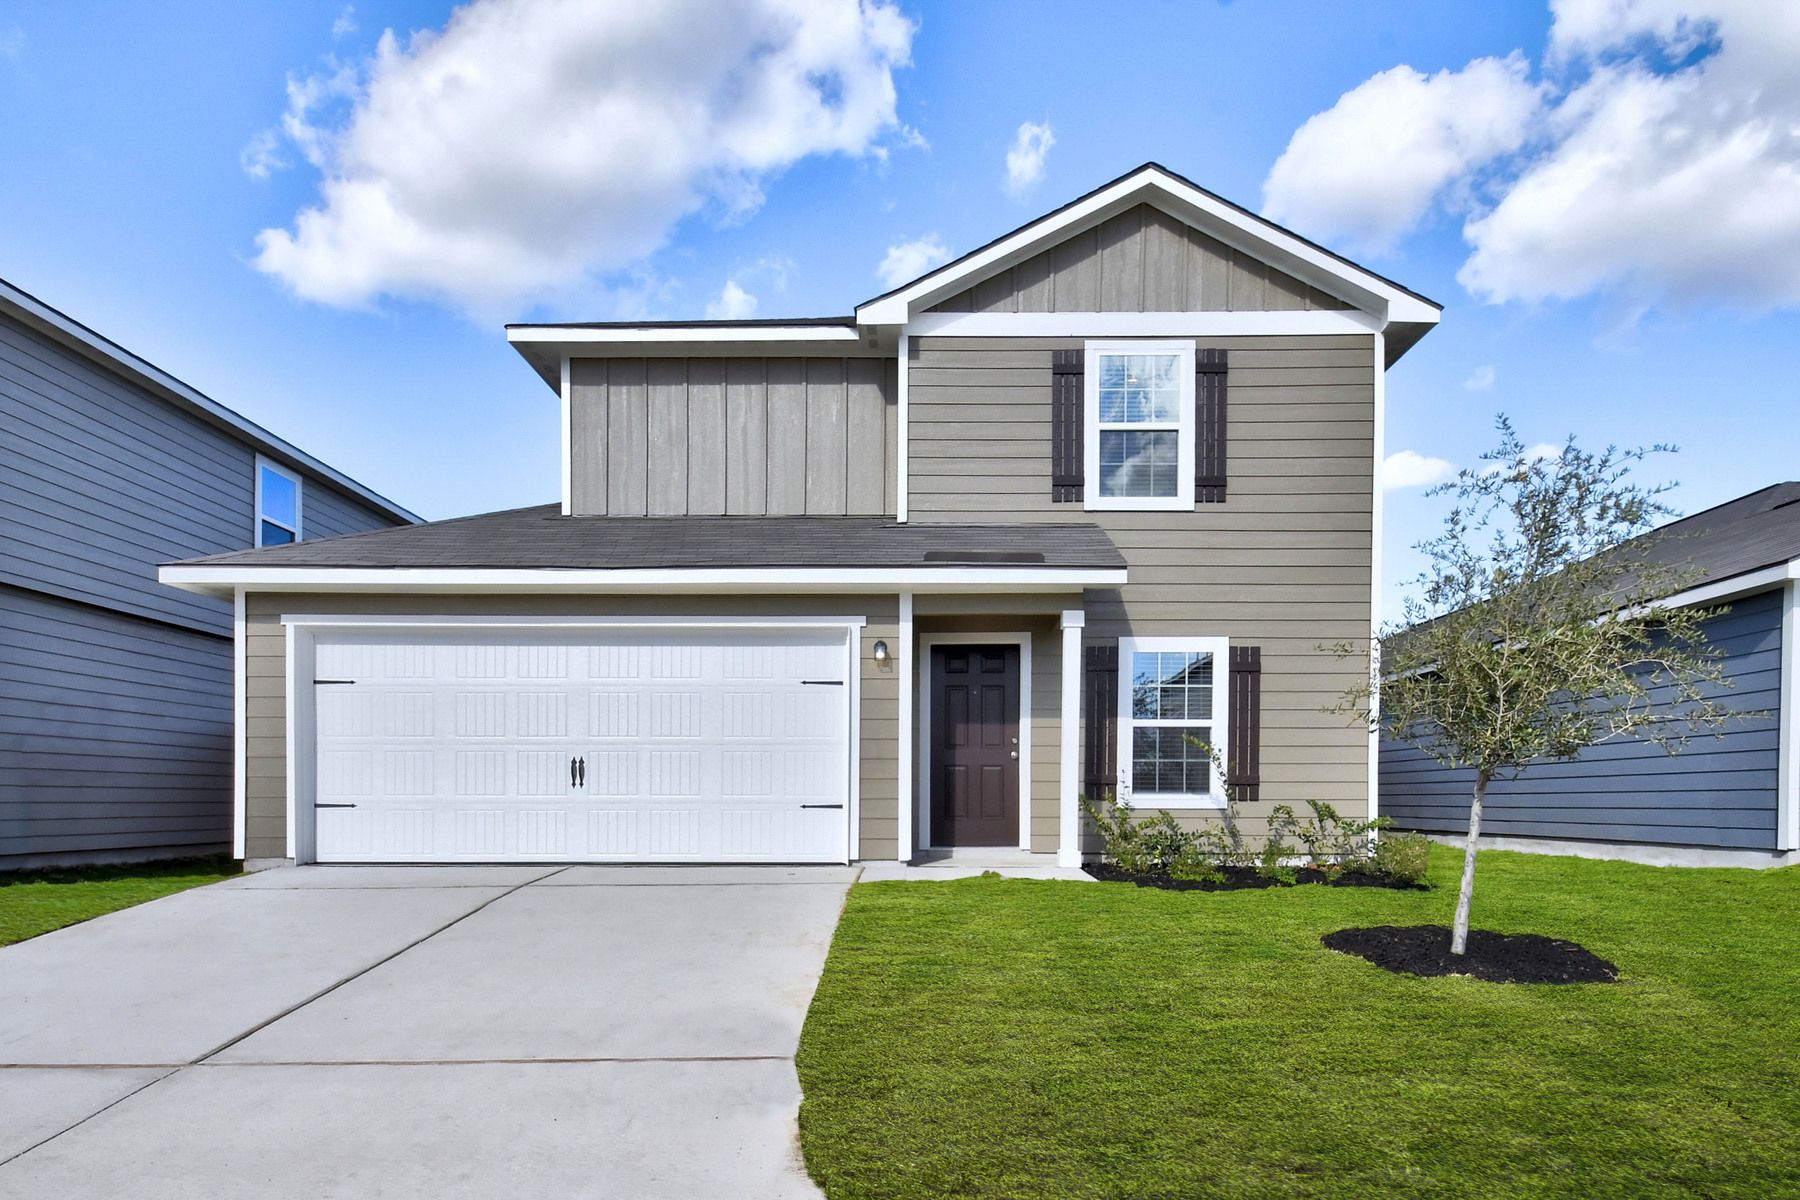 The Canyon by LGI Homes:The Canyon is a stunning two-story home at Savannah Place.